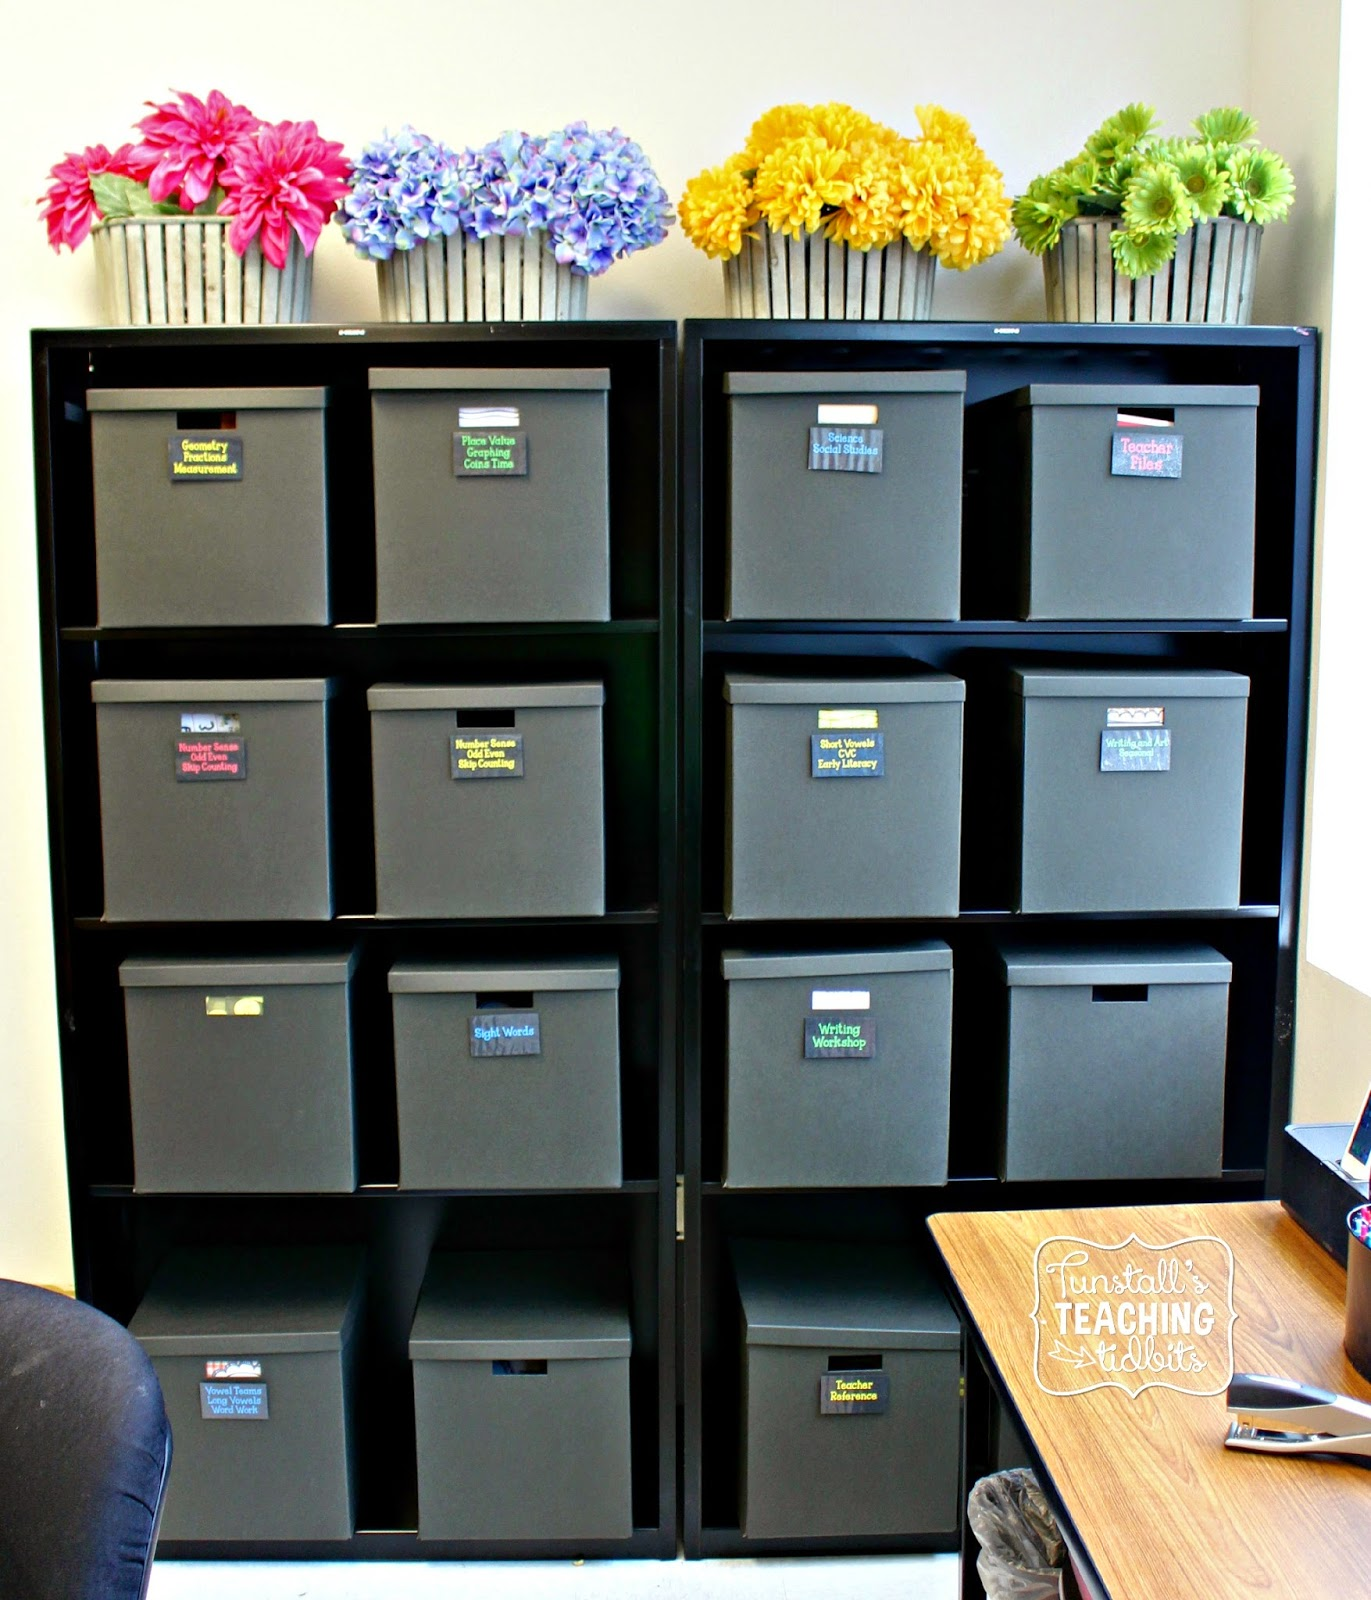 Classroom Organization Ideas Elementary ~ Organizing the elementary classroom tunstall s teaching